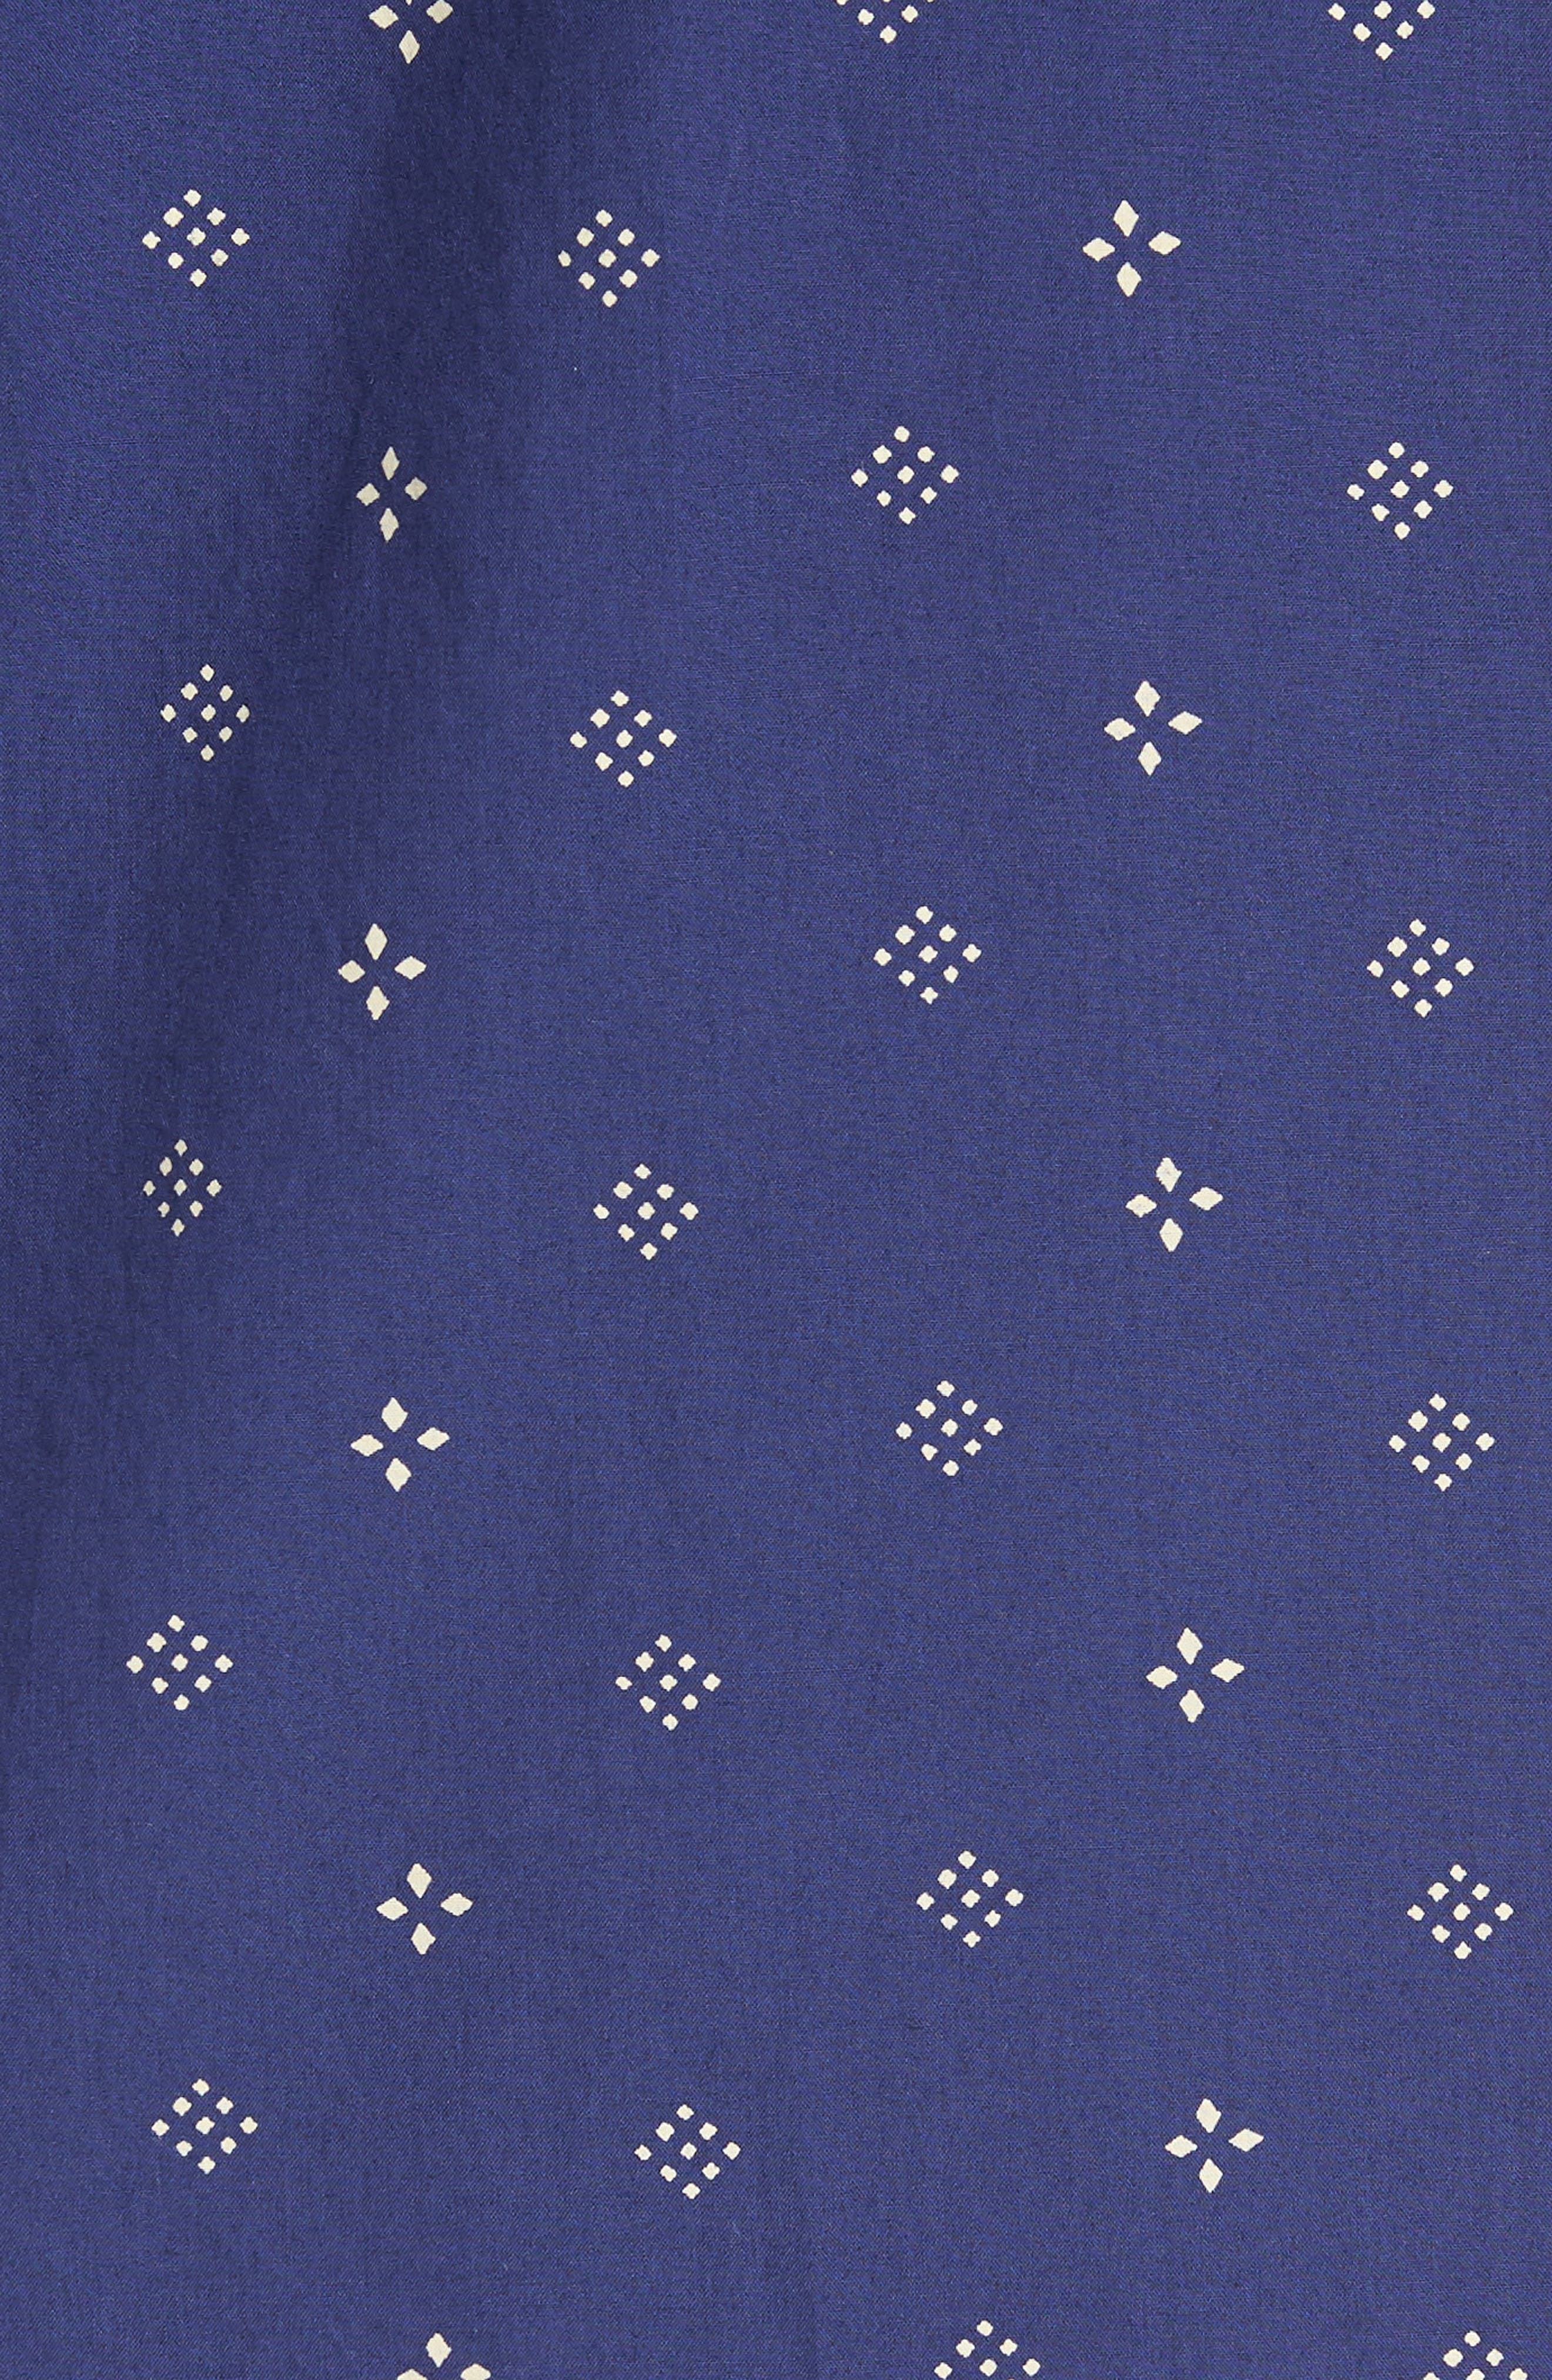 Iki Lawn Embroidered Shirt,                             Alternate thumbnail 5, color,                             PATRIOT BLUE TURTLE DOVE